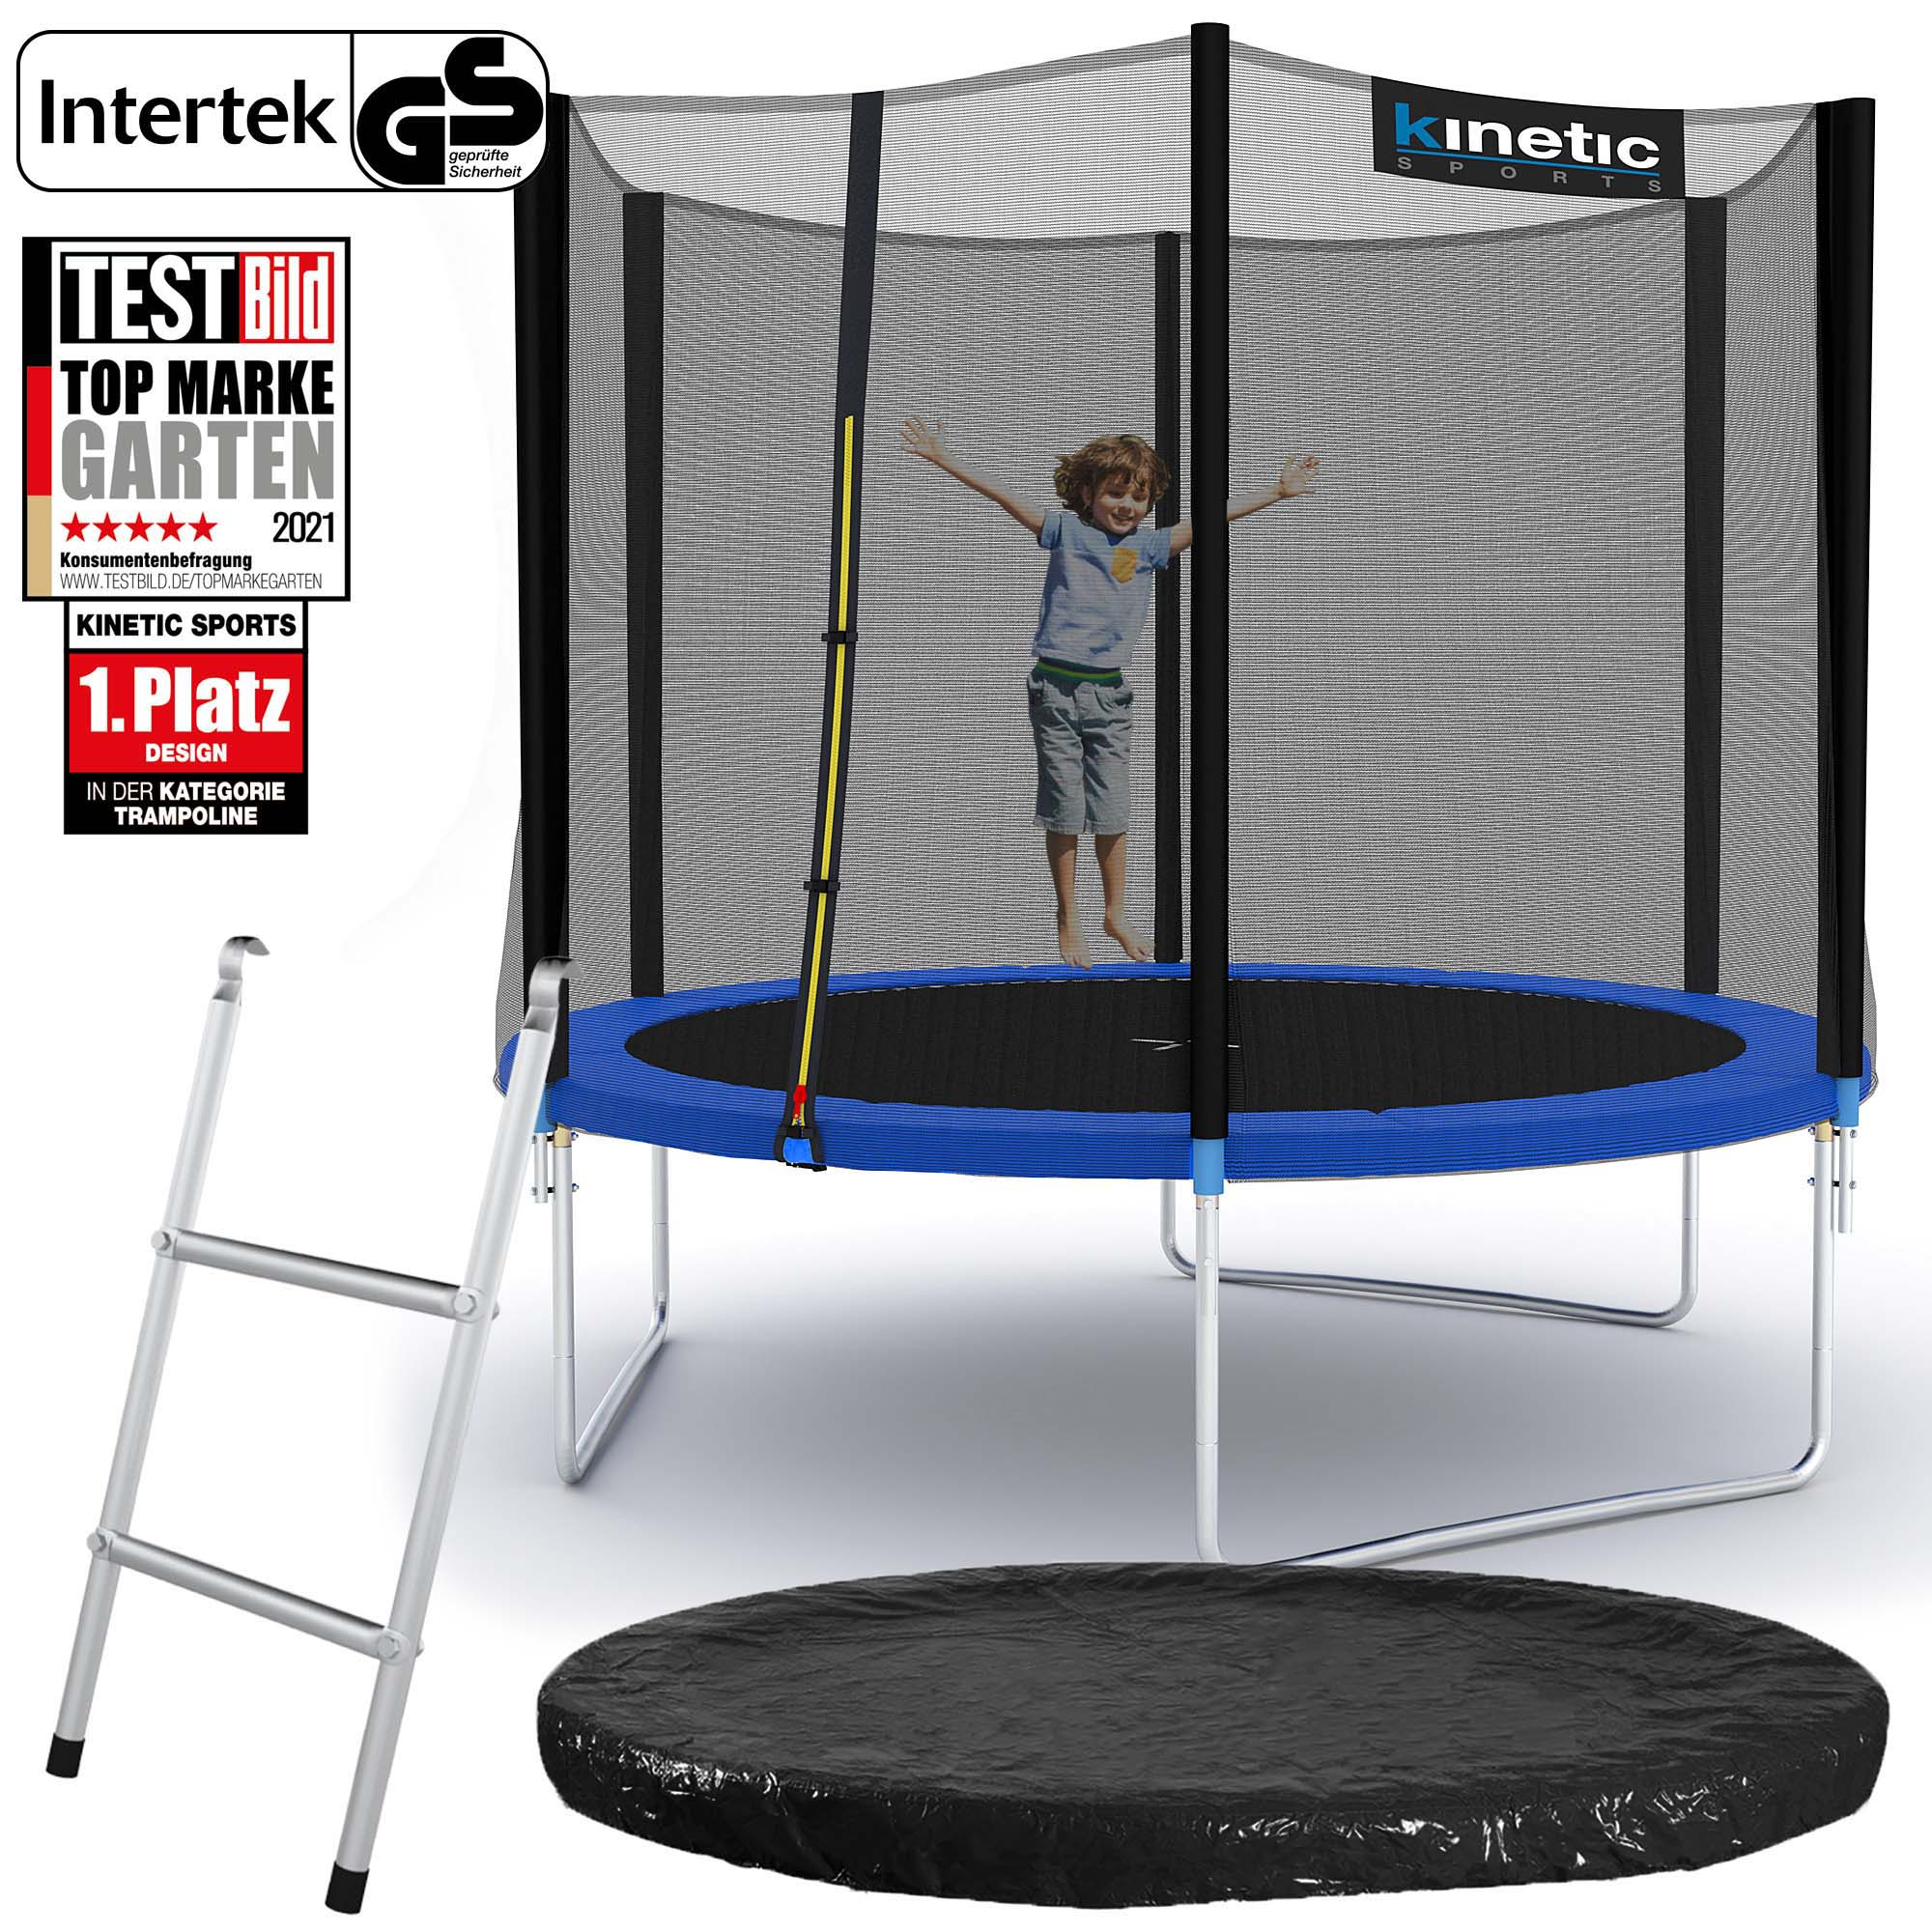 trampolin komplett set netz randabdeckung leiter abdeckplane outdoor garten ebay. Black Bedroom Furniture Sets. Home Design Ideas